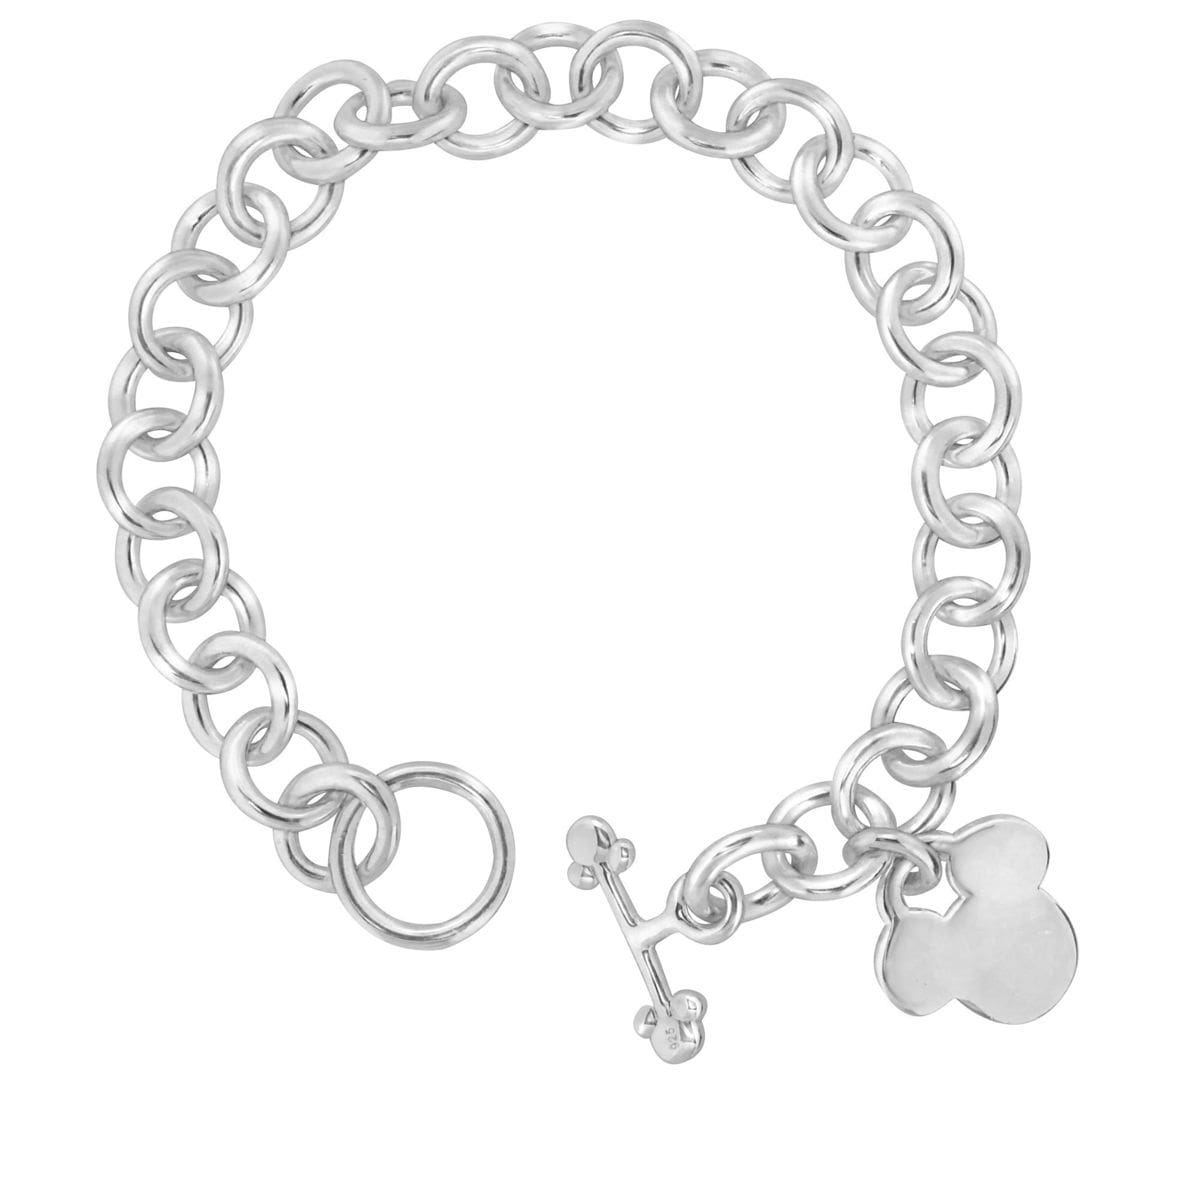 Product Image Of Mickey Mouse Icon Charm Bracelet Disney Designer Jewelry Collection 1